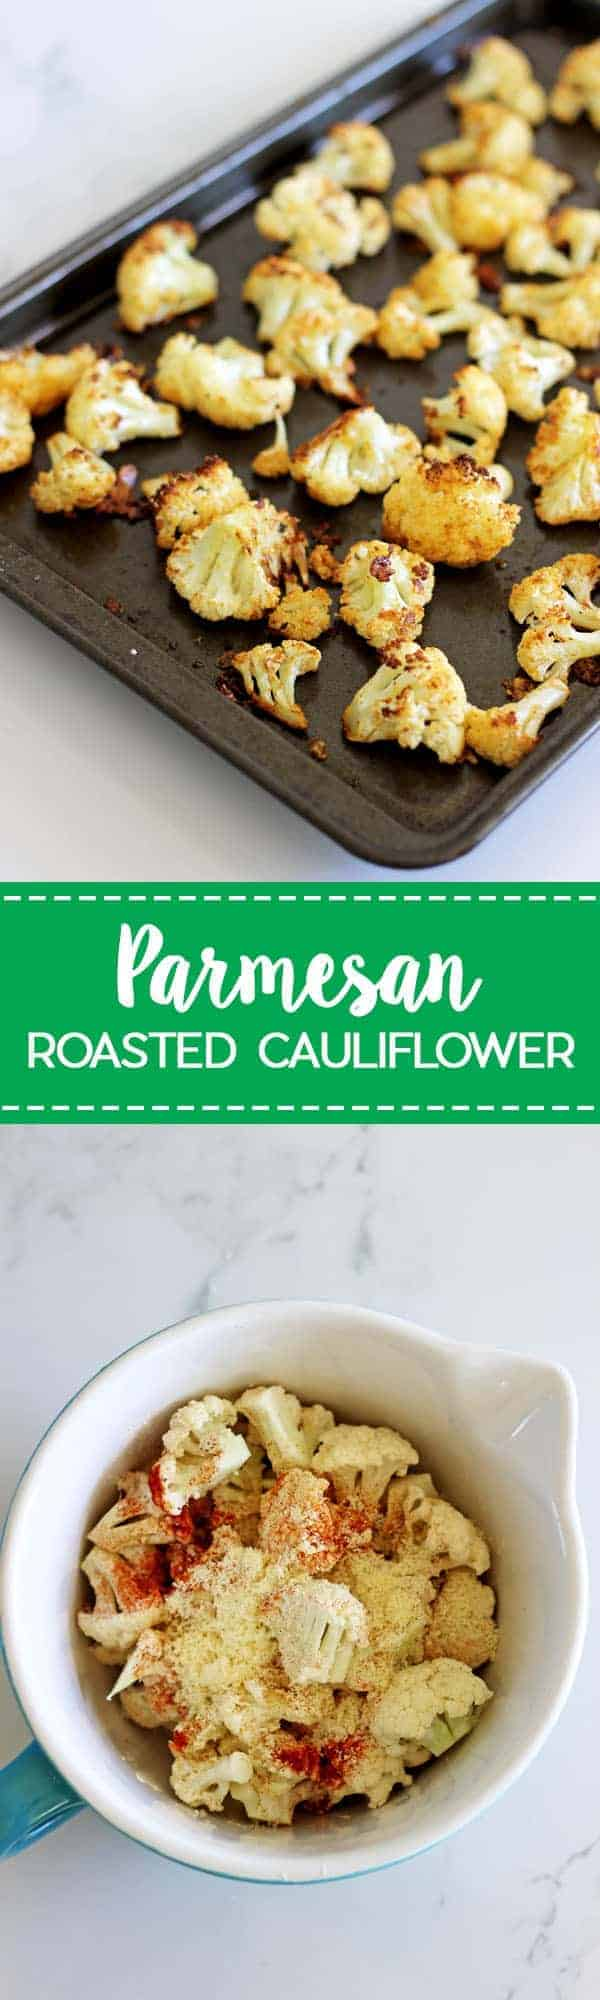 Parmesan Roasted Cauliflower - the perfect way to eat this delicious vegetable, cheesy, crispy and a great snack or side dish! | thekiwicountrygirl.com